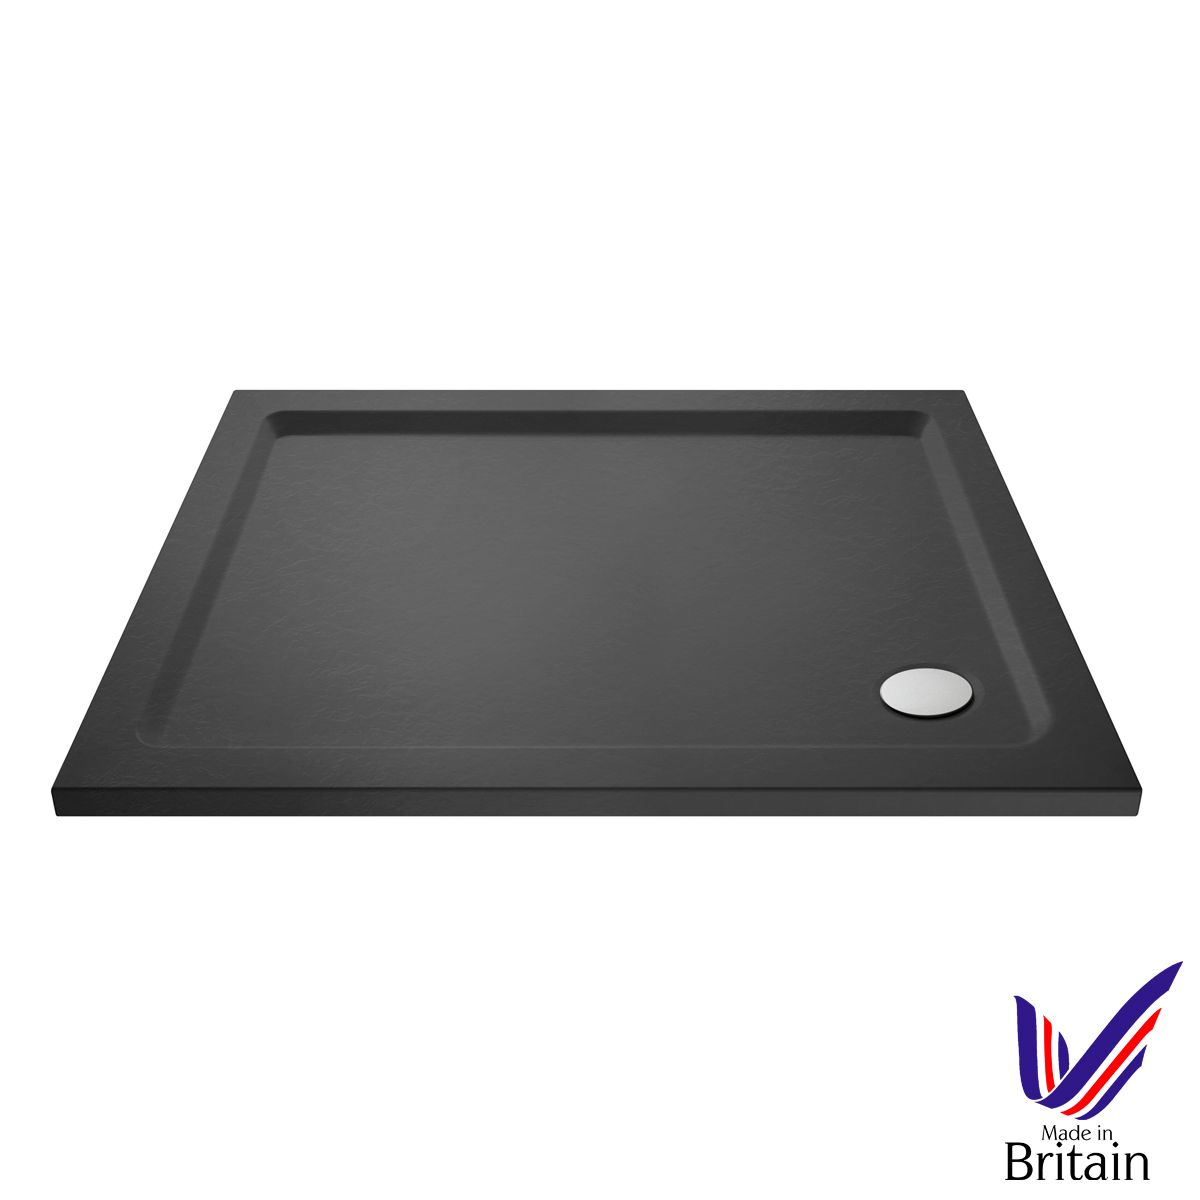 1200 x 900 Shower Tray Slate Grey Rectangular Low Profile by Pearlstone